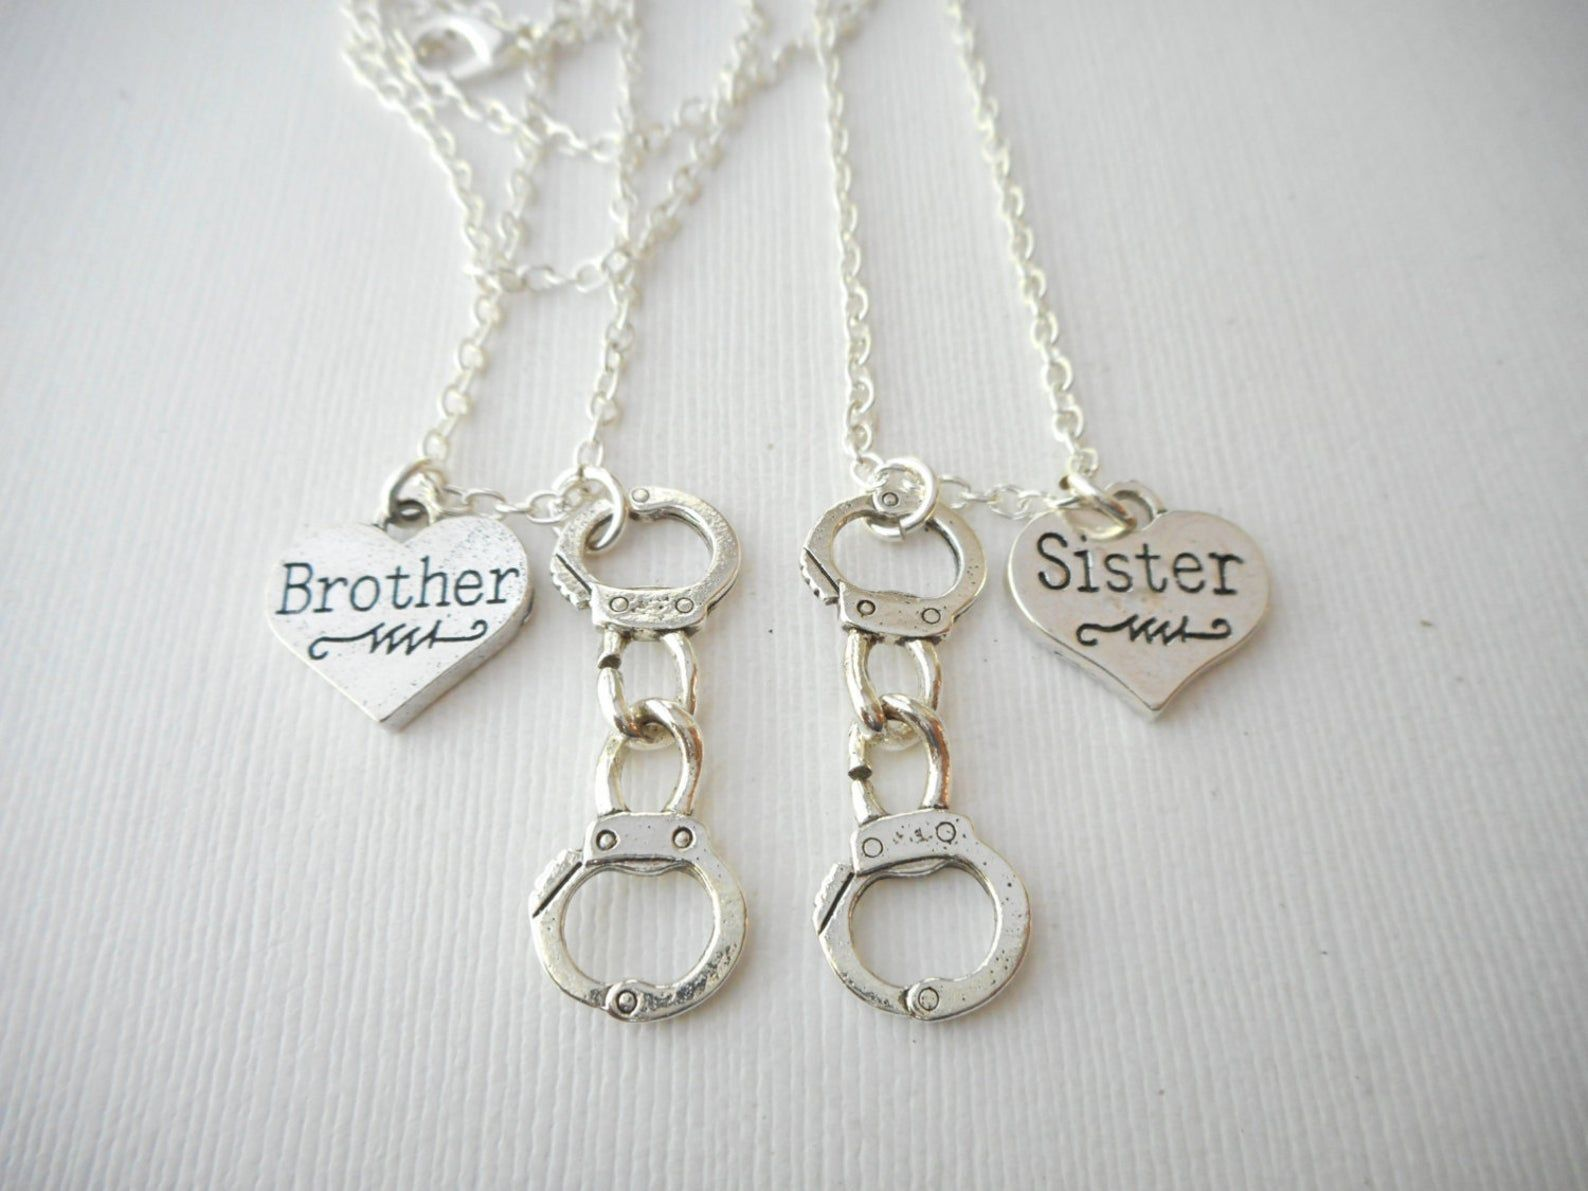 2 brother sister handcuff best friend necklaces brother